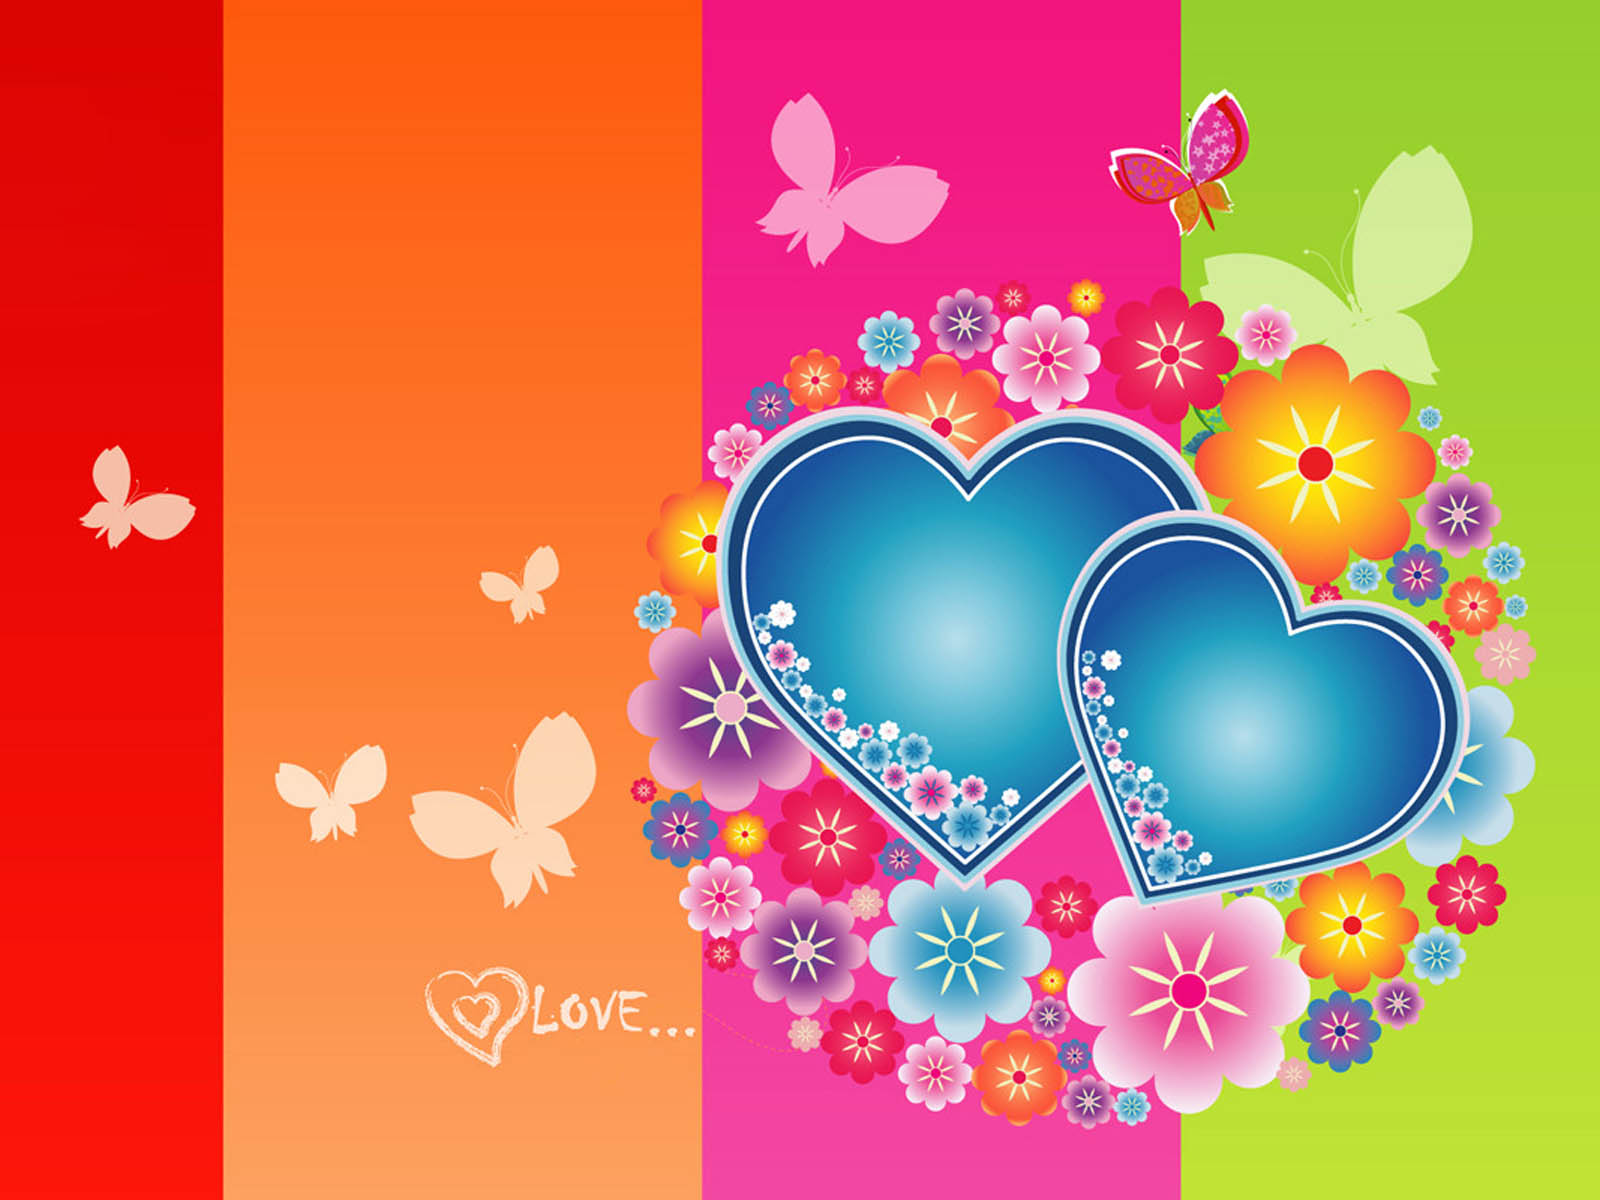 Love Heart Design Wallpaper : wallpaper: Love Heart Wallpapers